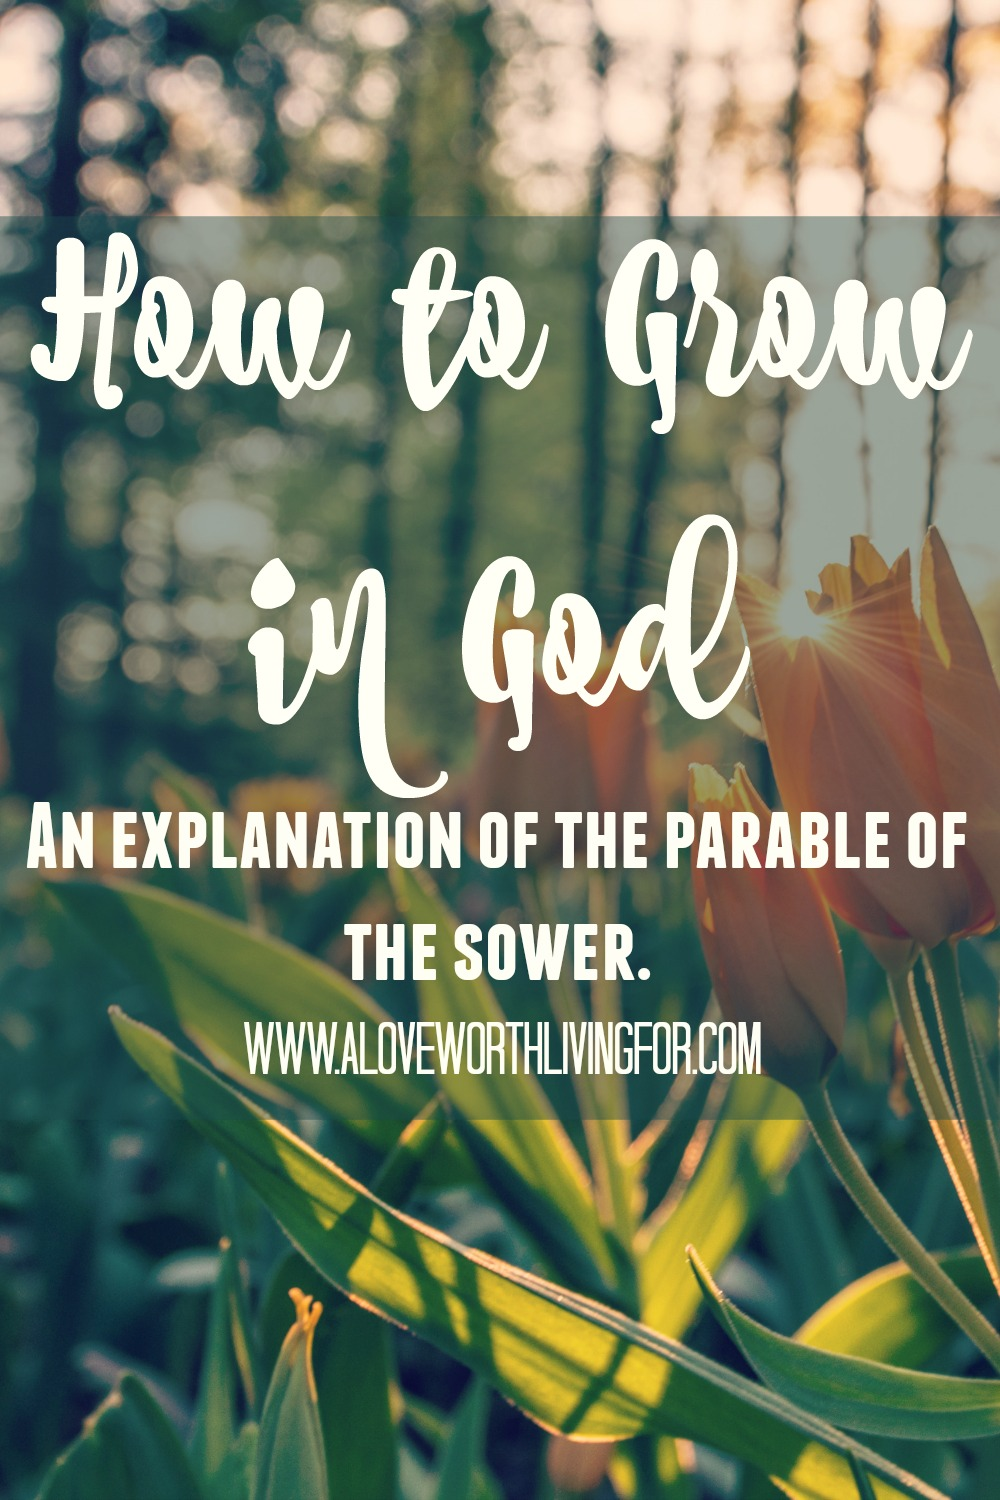 The parable of how love won the argument of separation 63